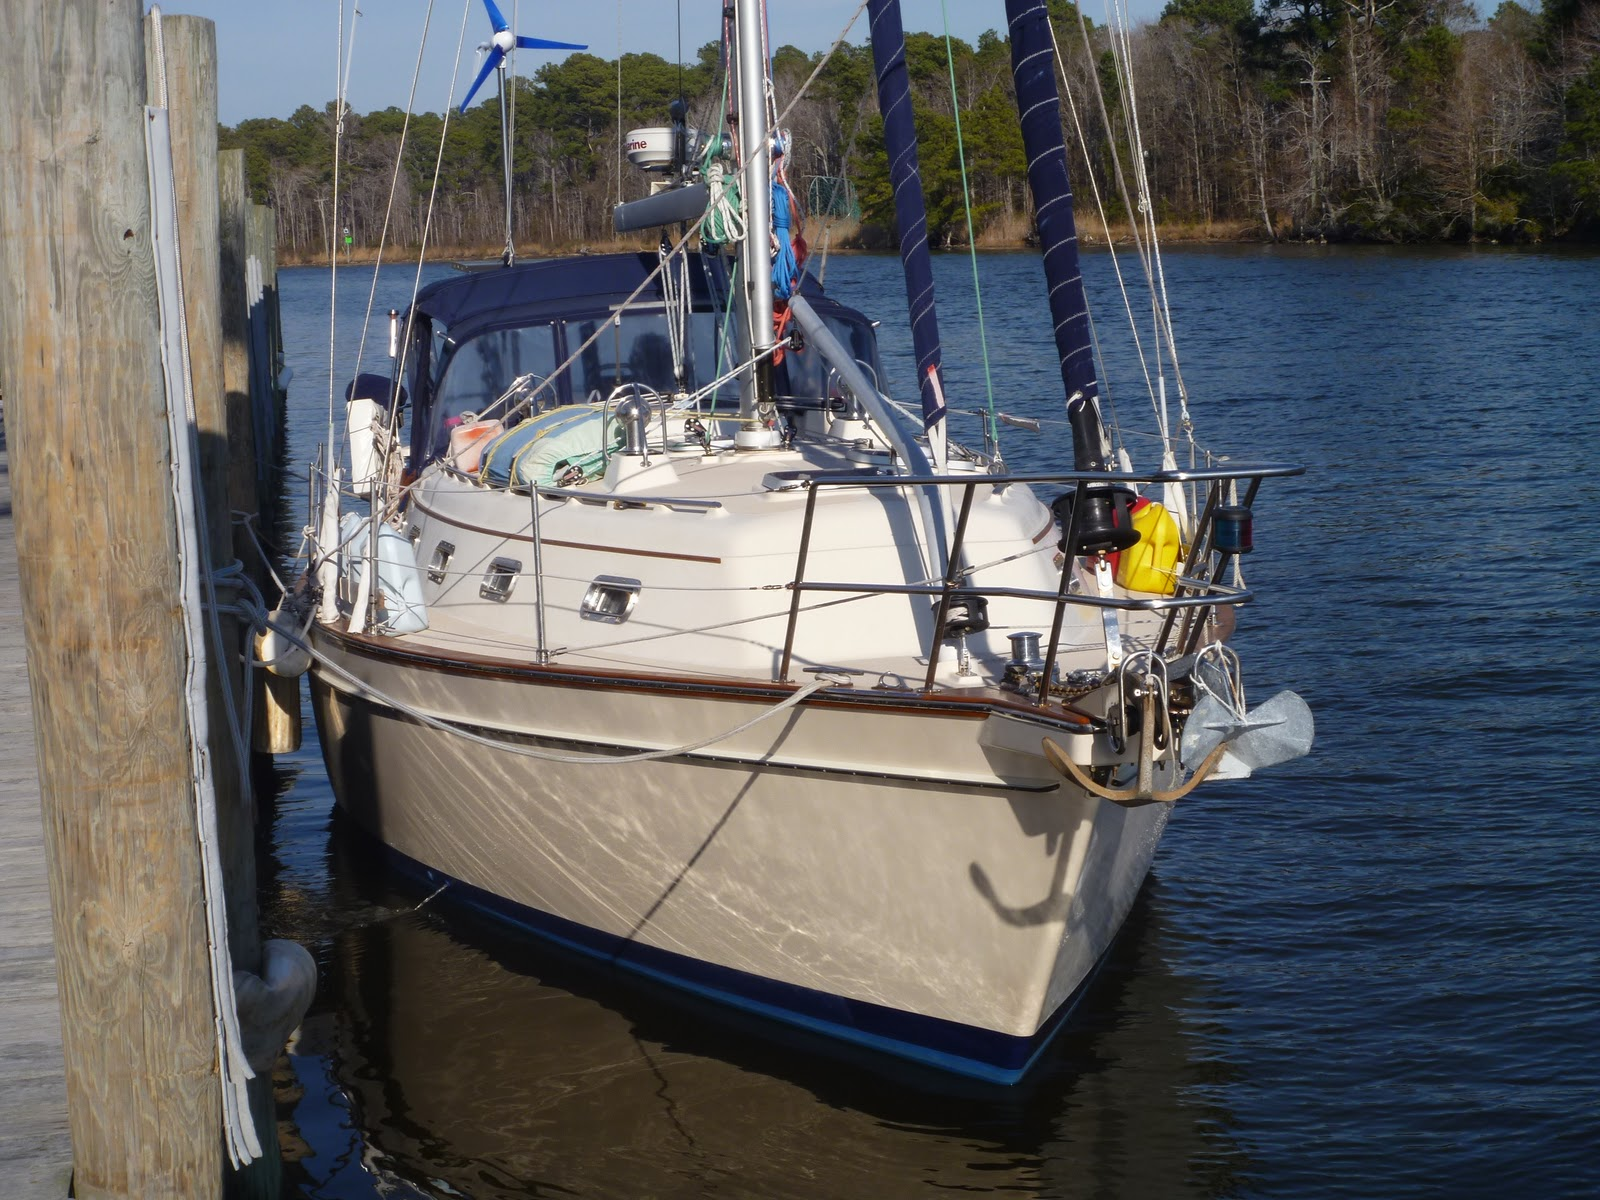 ... this is Tides Inn, our Island Packet 380 cutter rig sailboat.